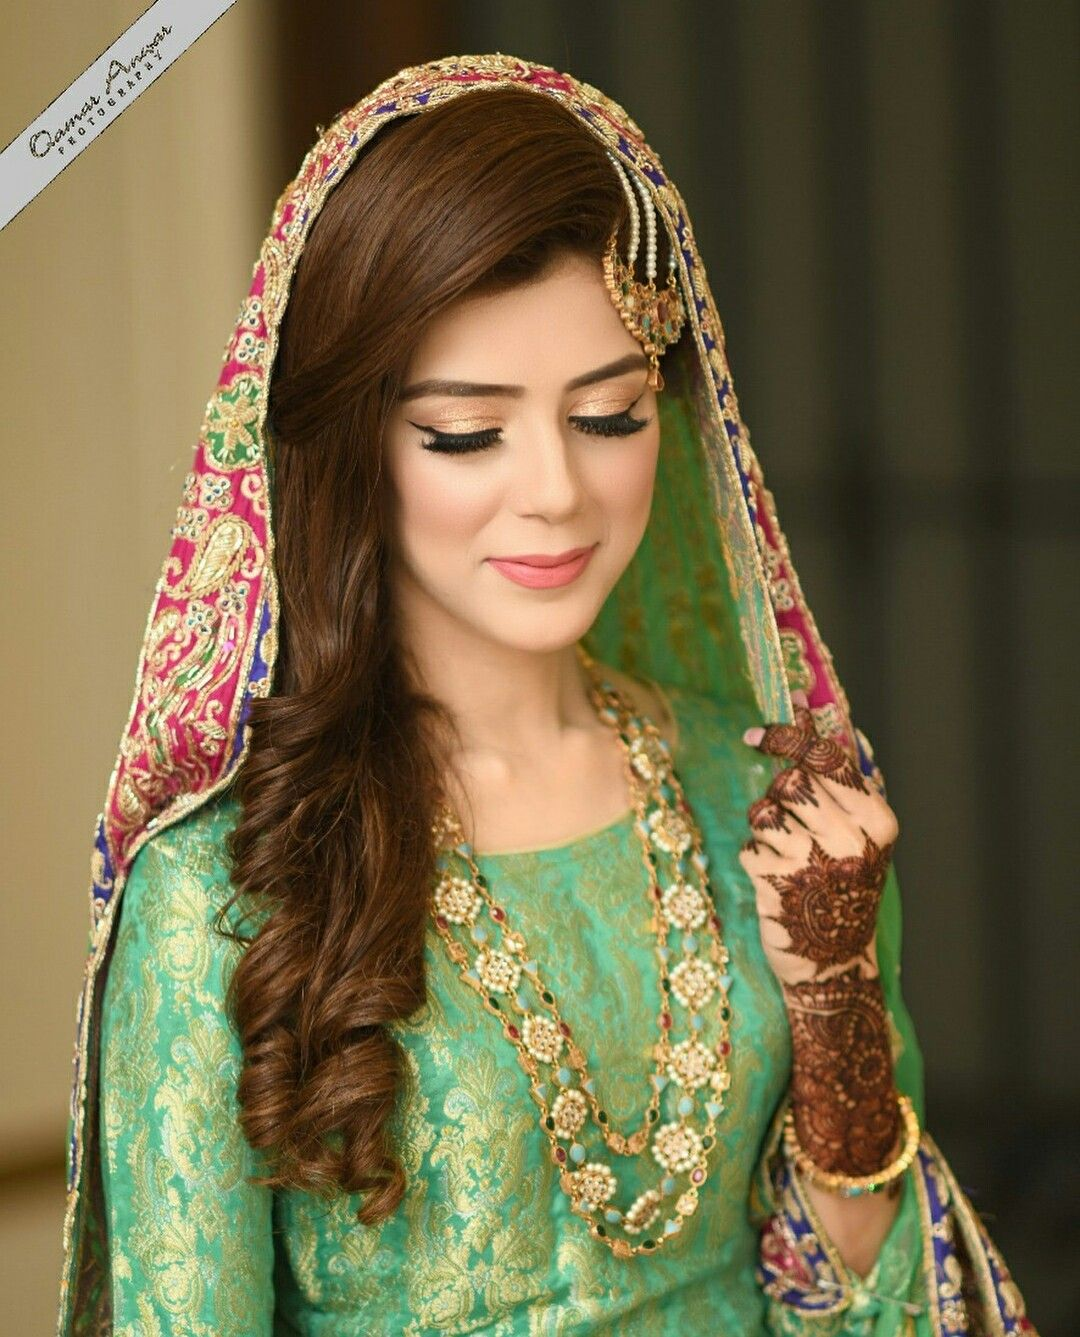 Mehndi makeup ♥❤❤Descent bride pic collection in ✨**Be$t